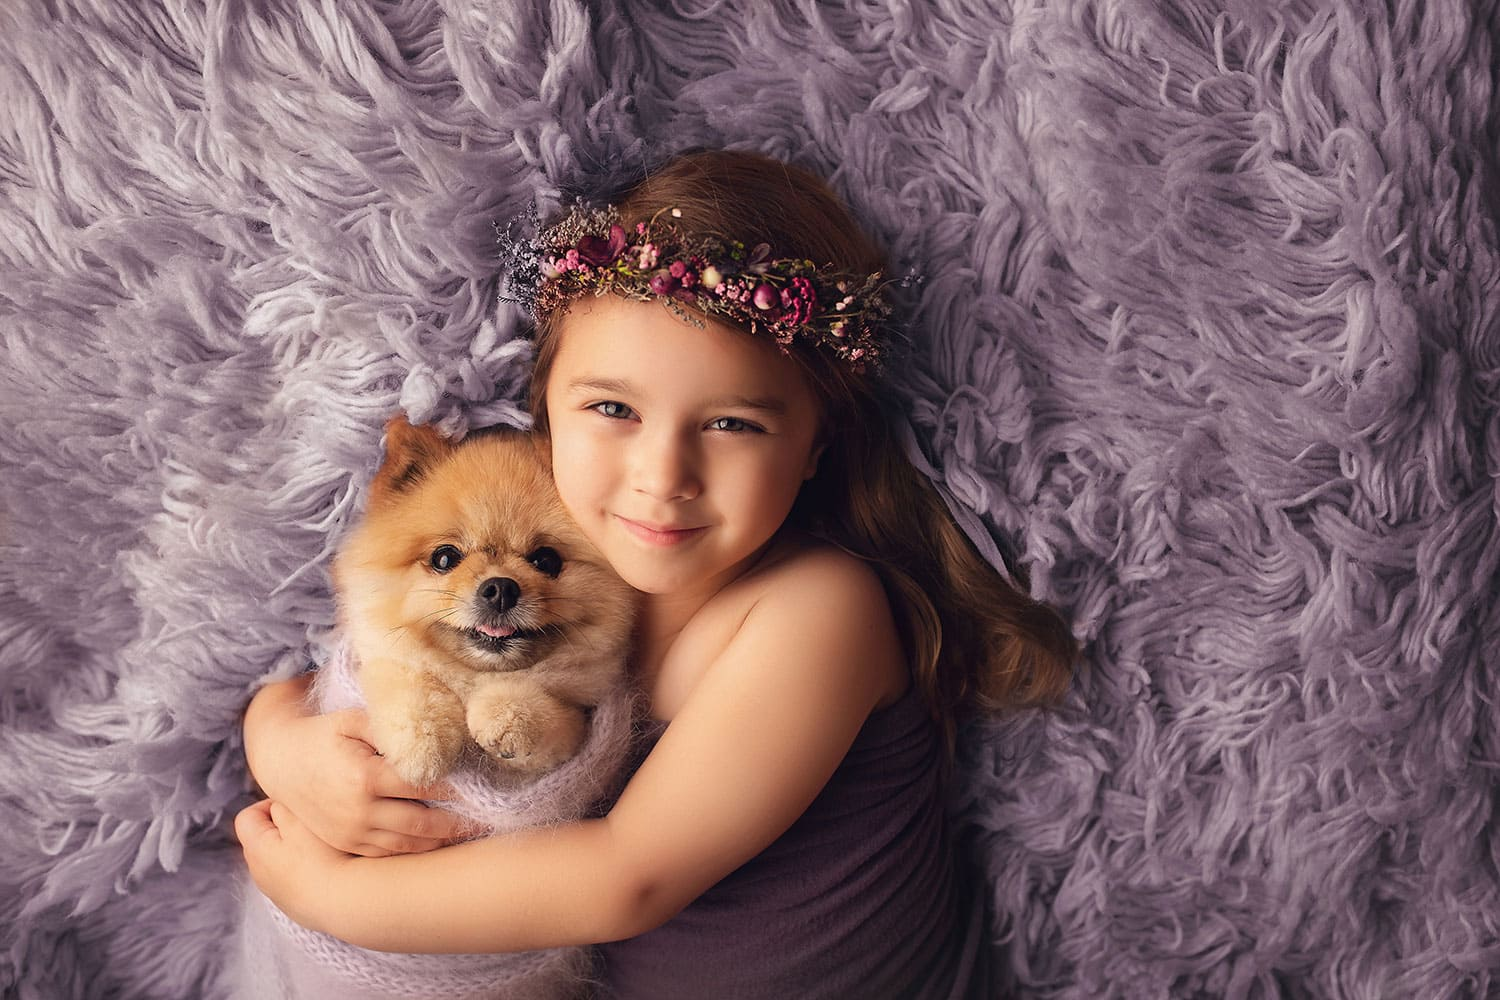 preschooler with puppy on purple flokati